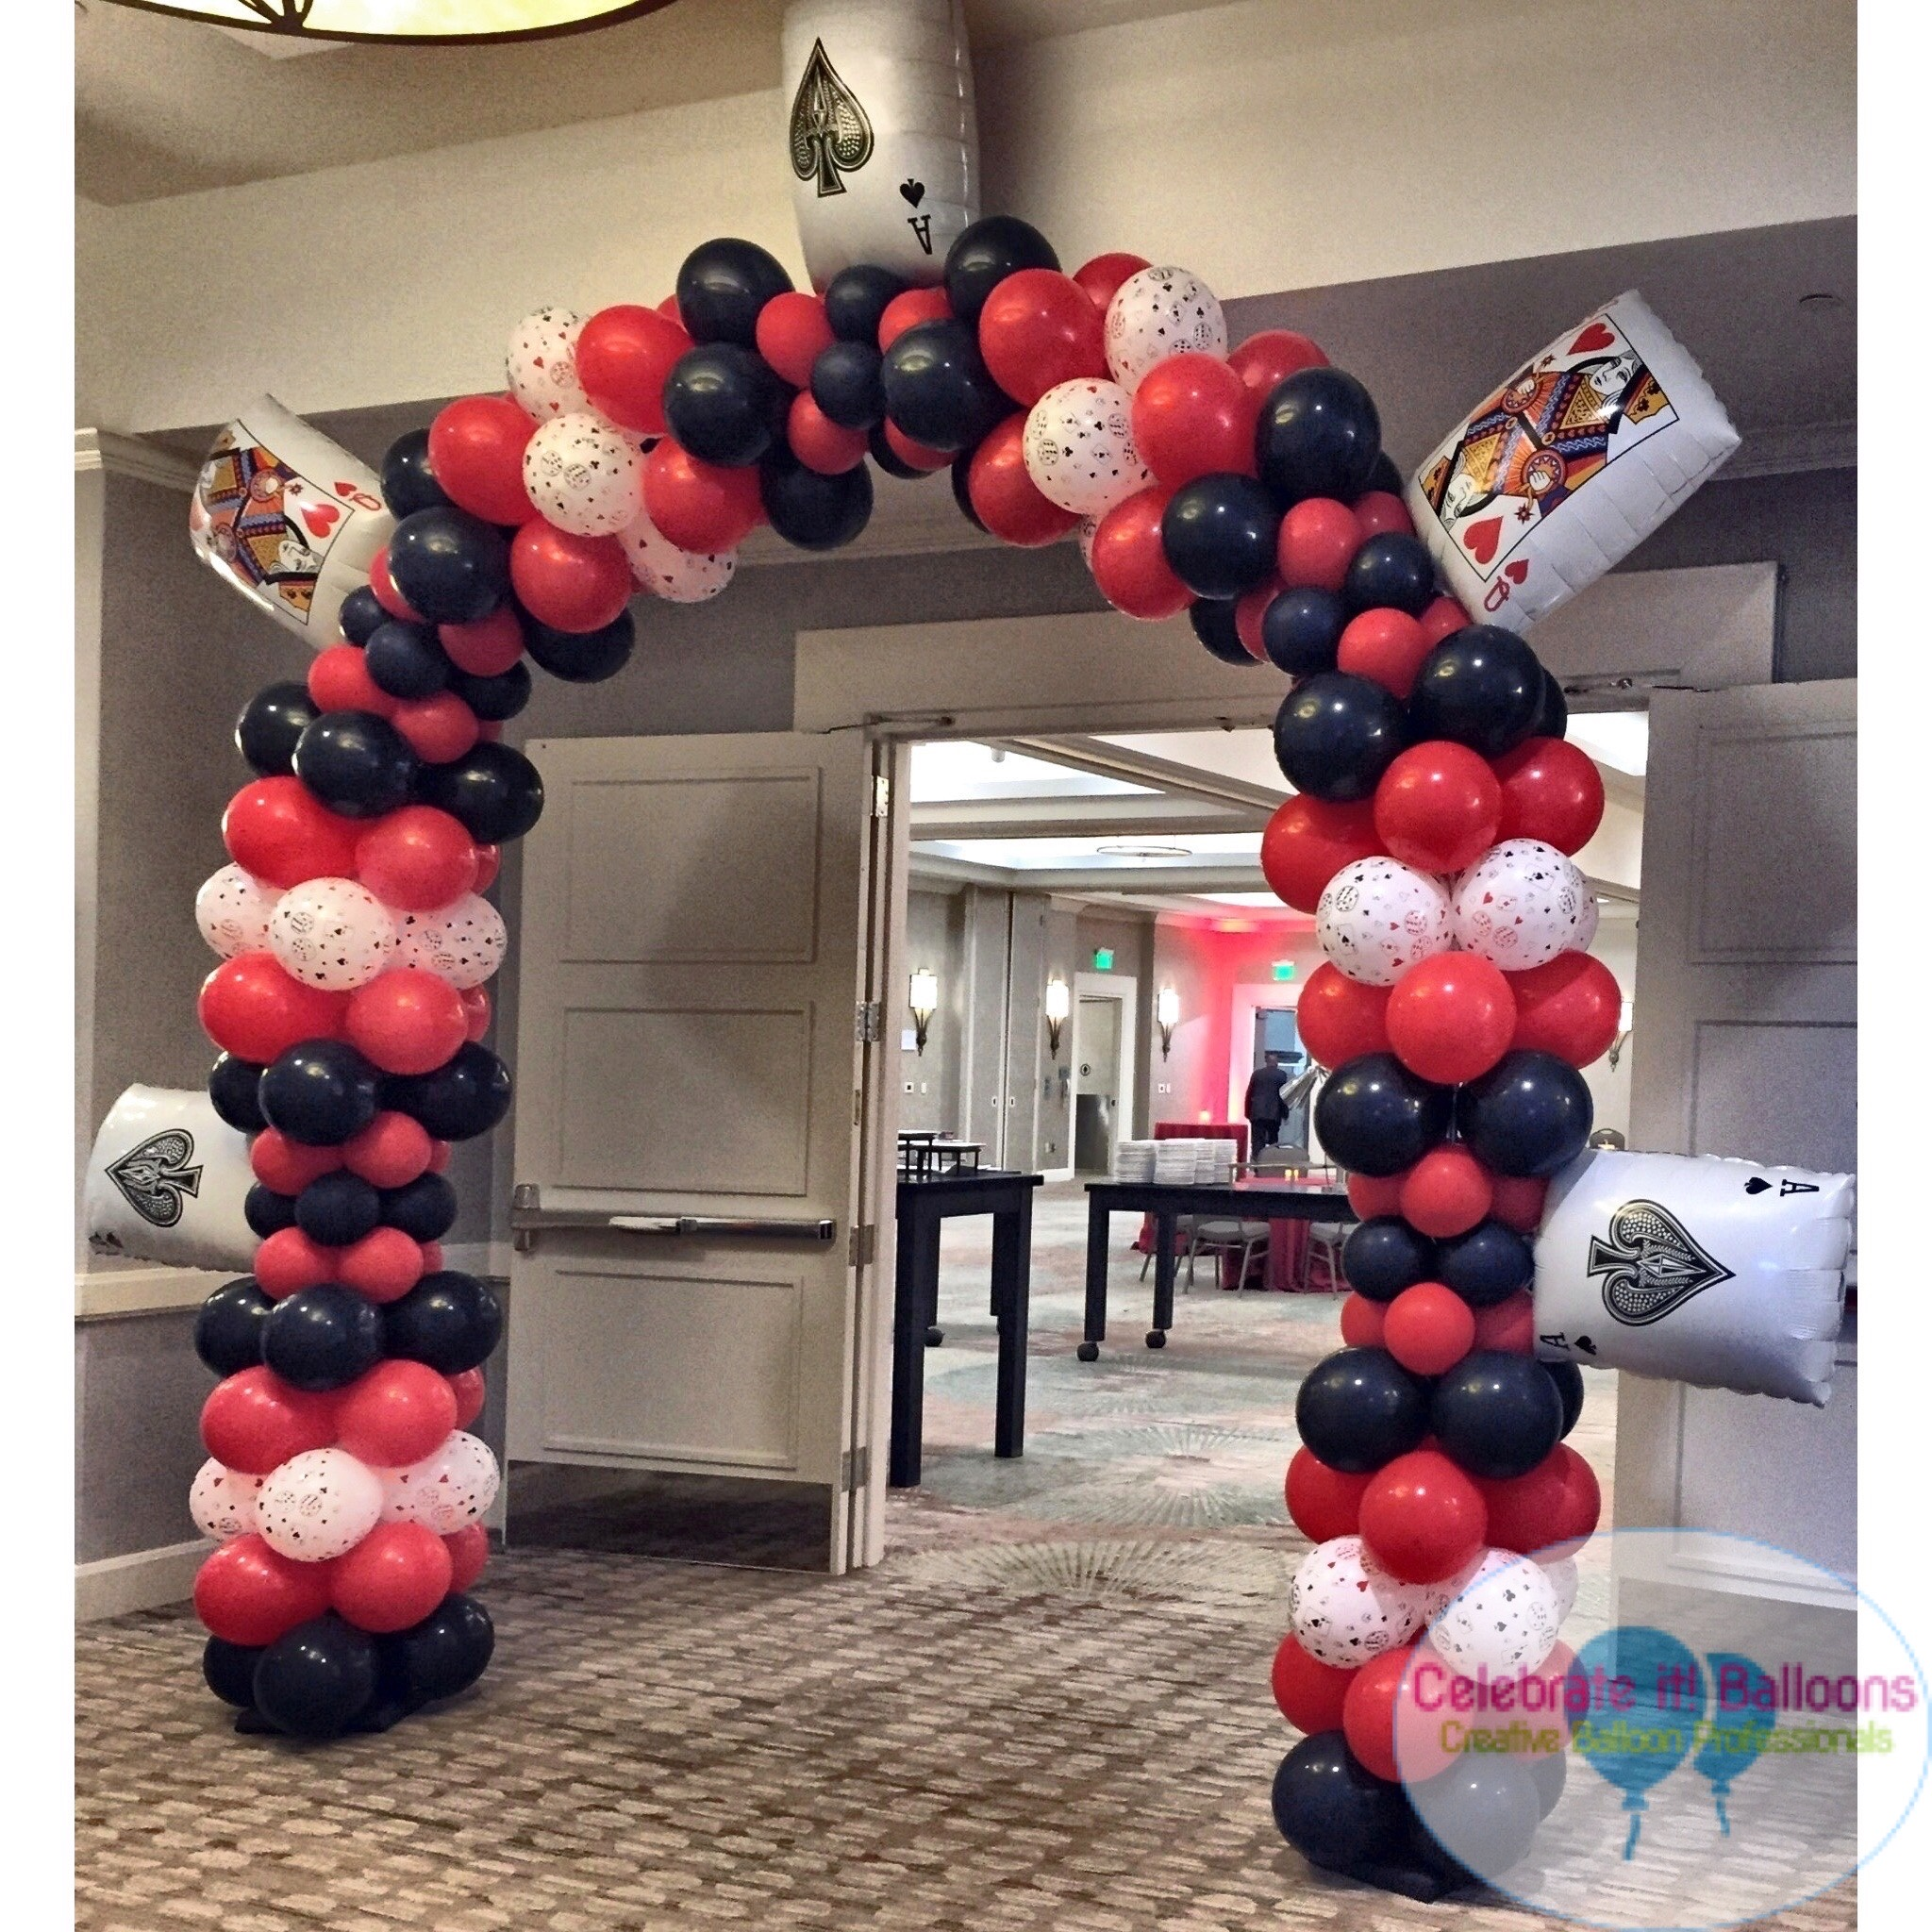 Casino themed balloon arch with playing card balloons in red, black and white